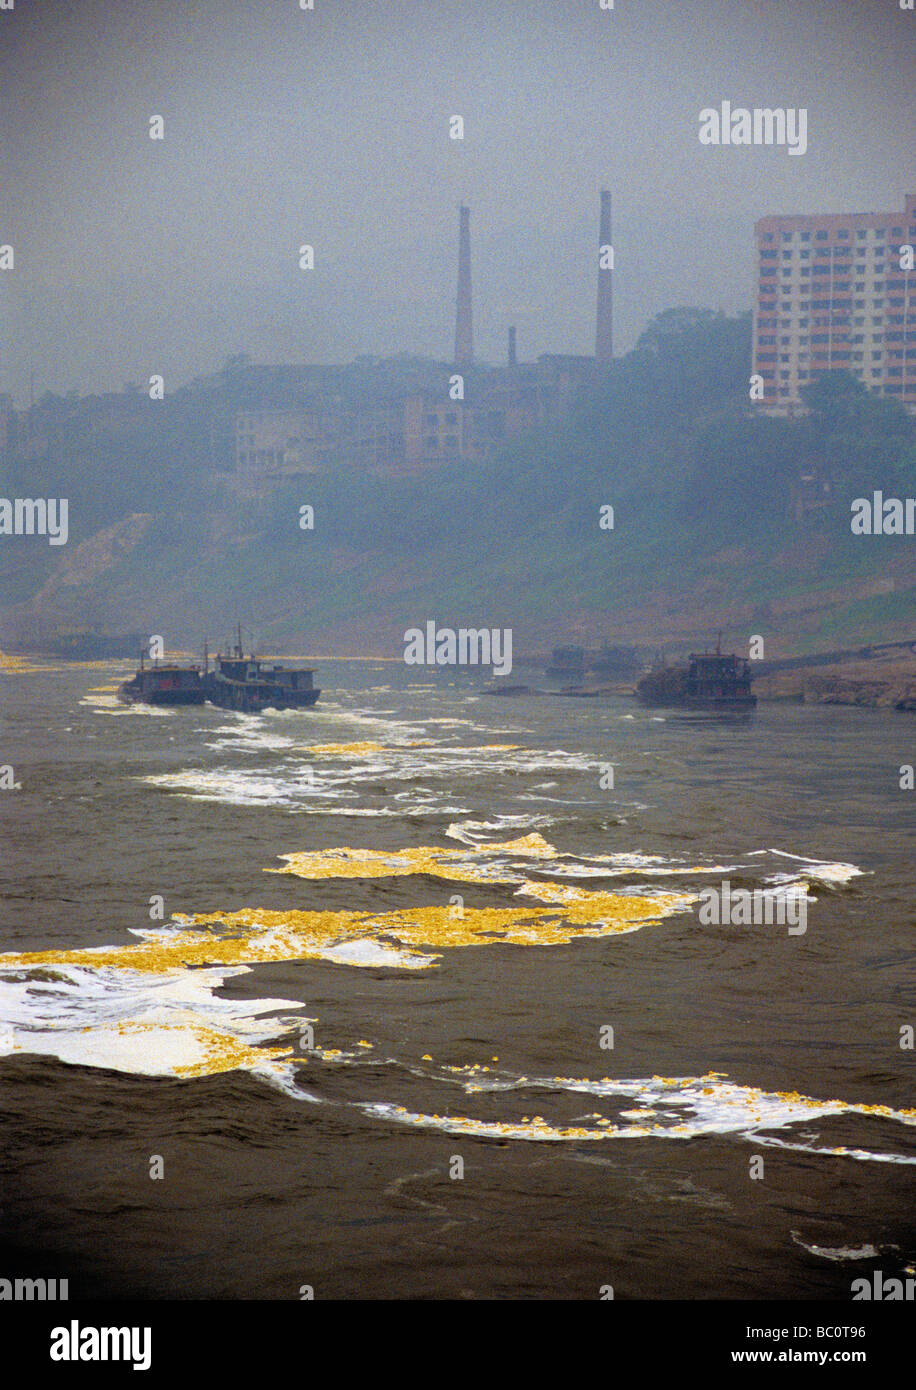 Industrial water pollution in China from factories along Yangtze downriver from Chongqing - Stock Image